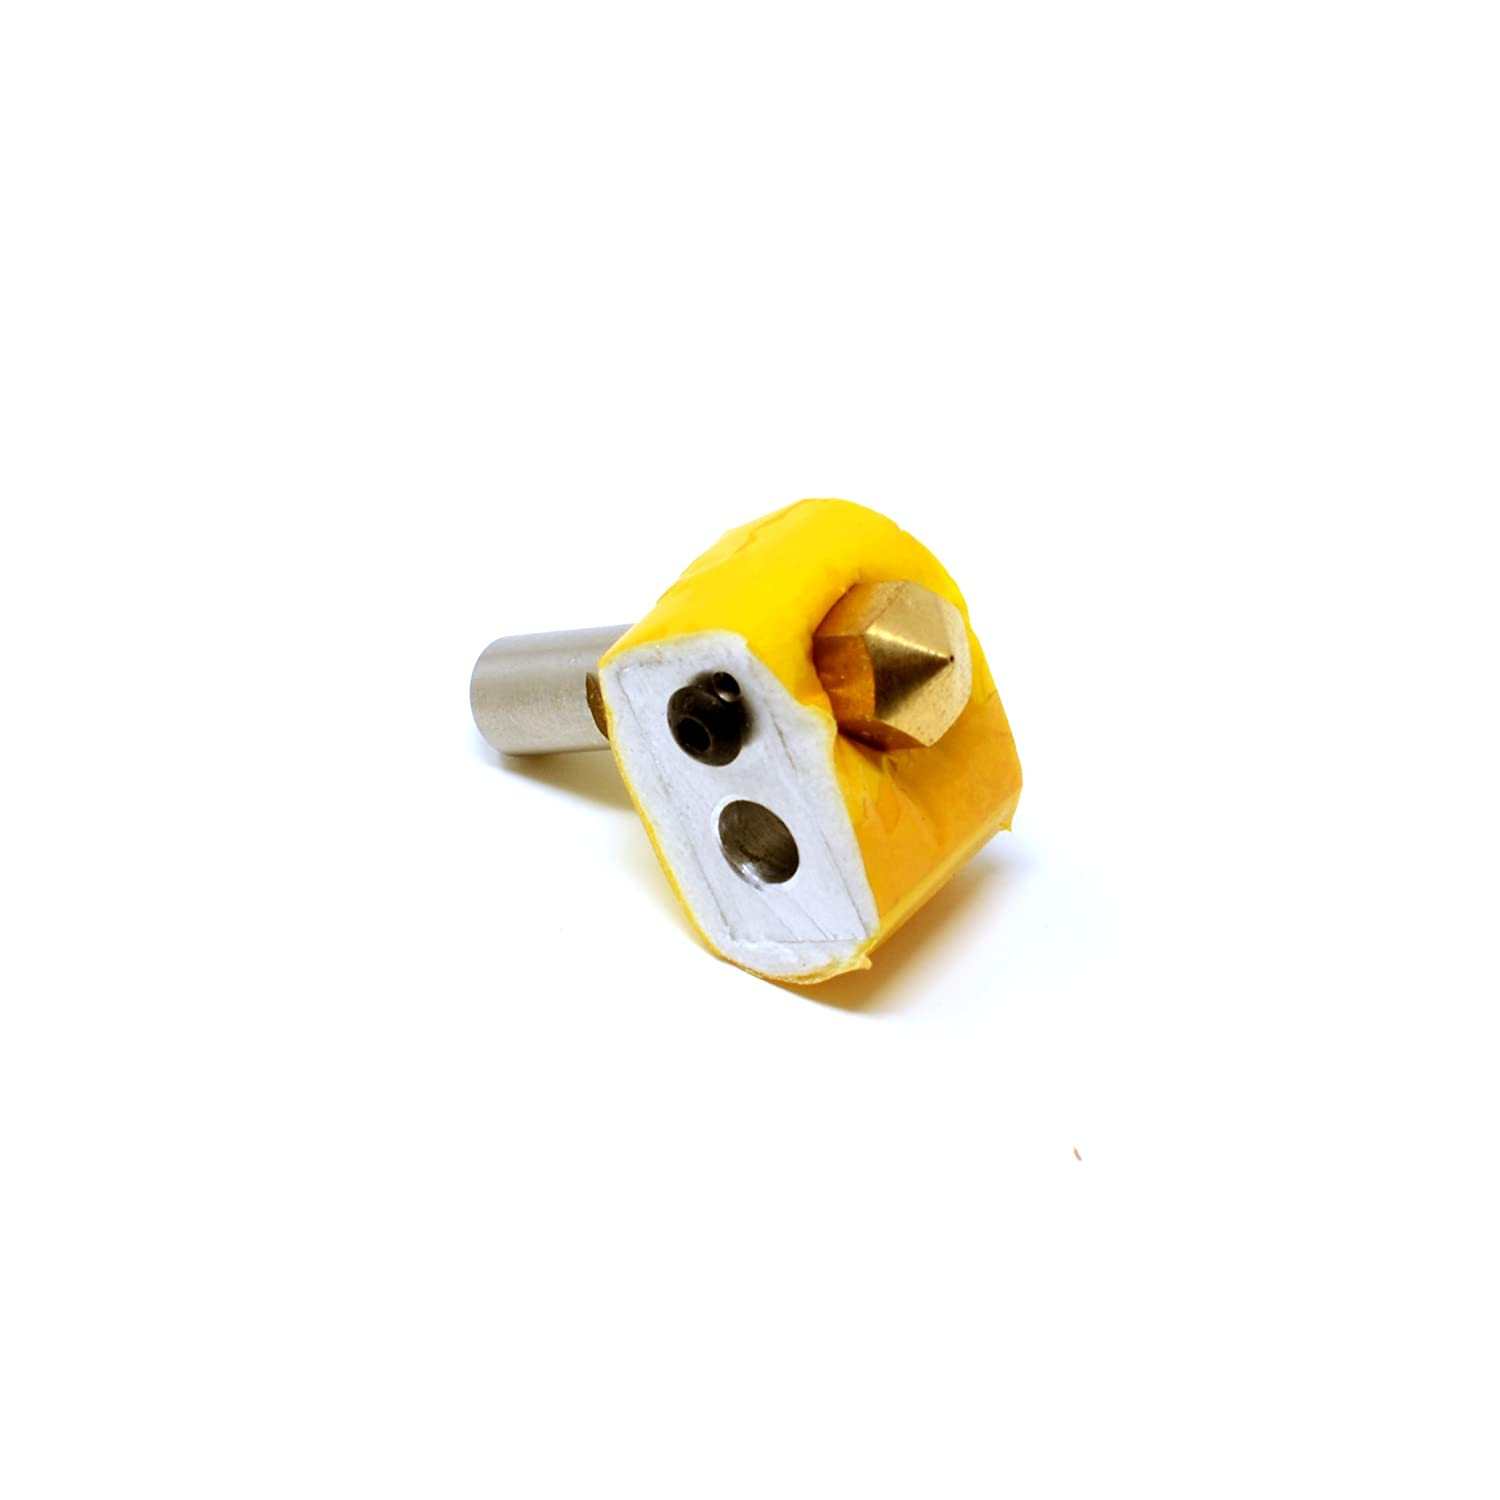 Wanhao Throat and PTFE Tube for 3D Printer I3 Anet A8 Monoprice Iron Peak 3D MK10 Hot End Kit with 0.4mm Nozzle Heating Block Reprap FlashForge M7 Threaded